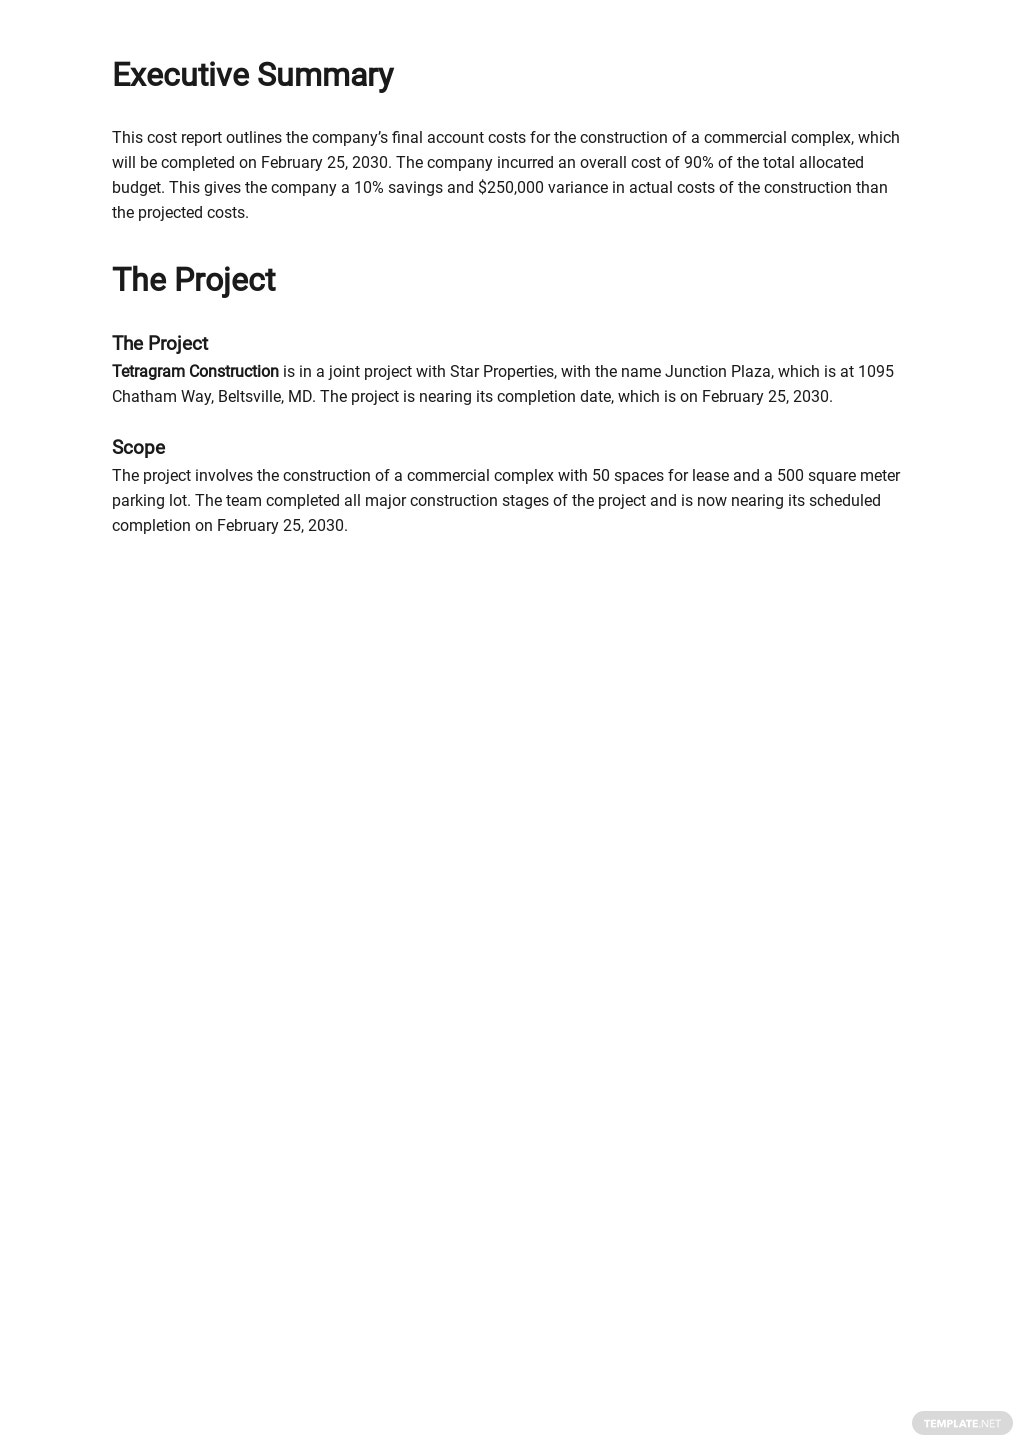 Construction Final Account Cost Report Template 1.jpe